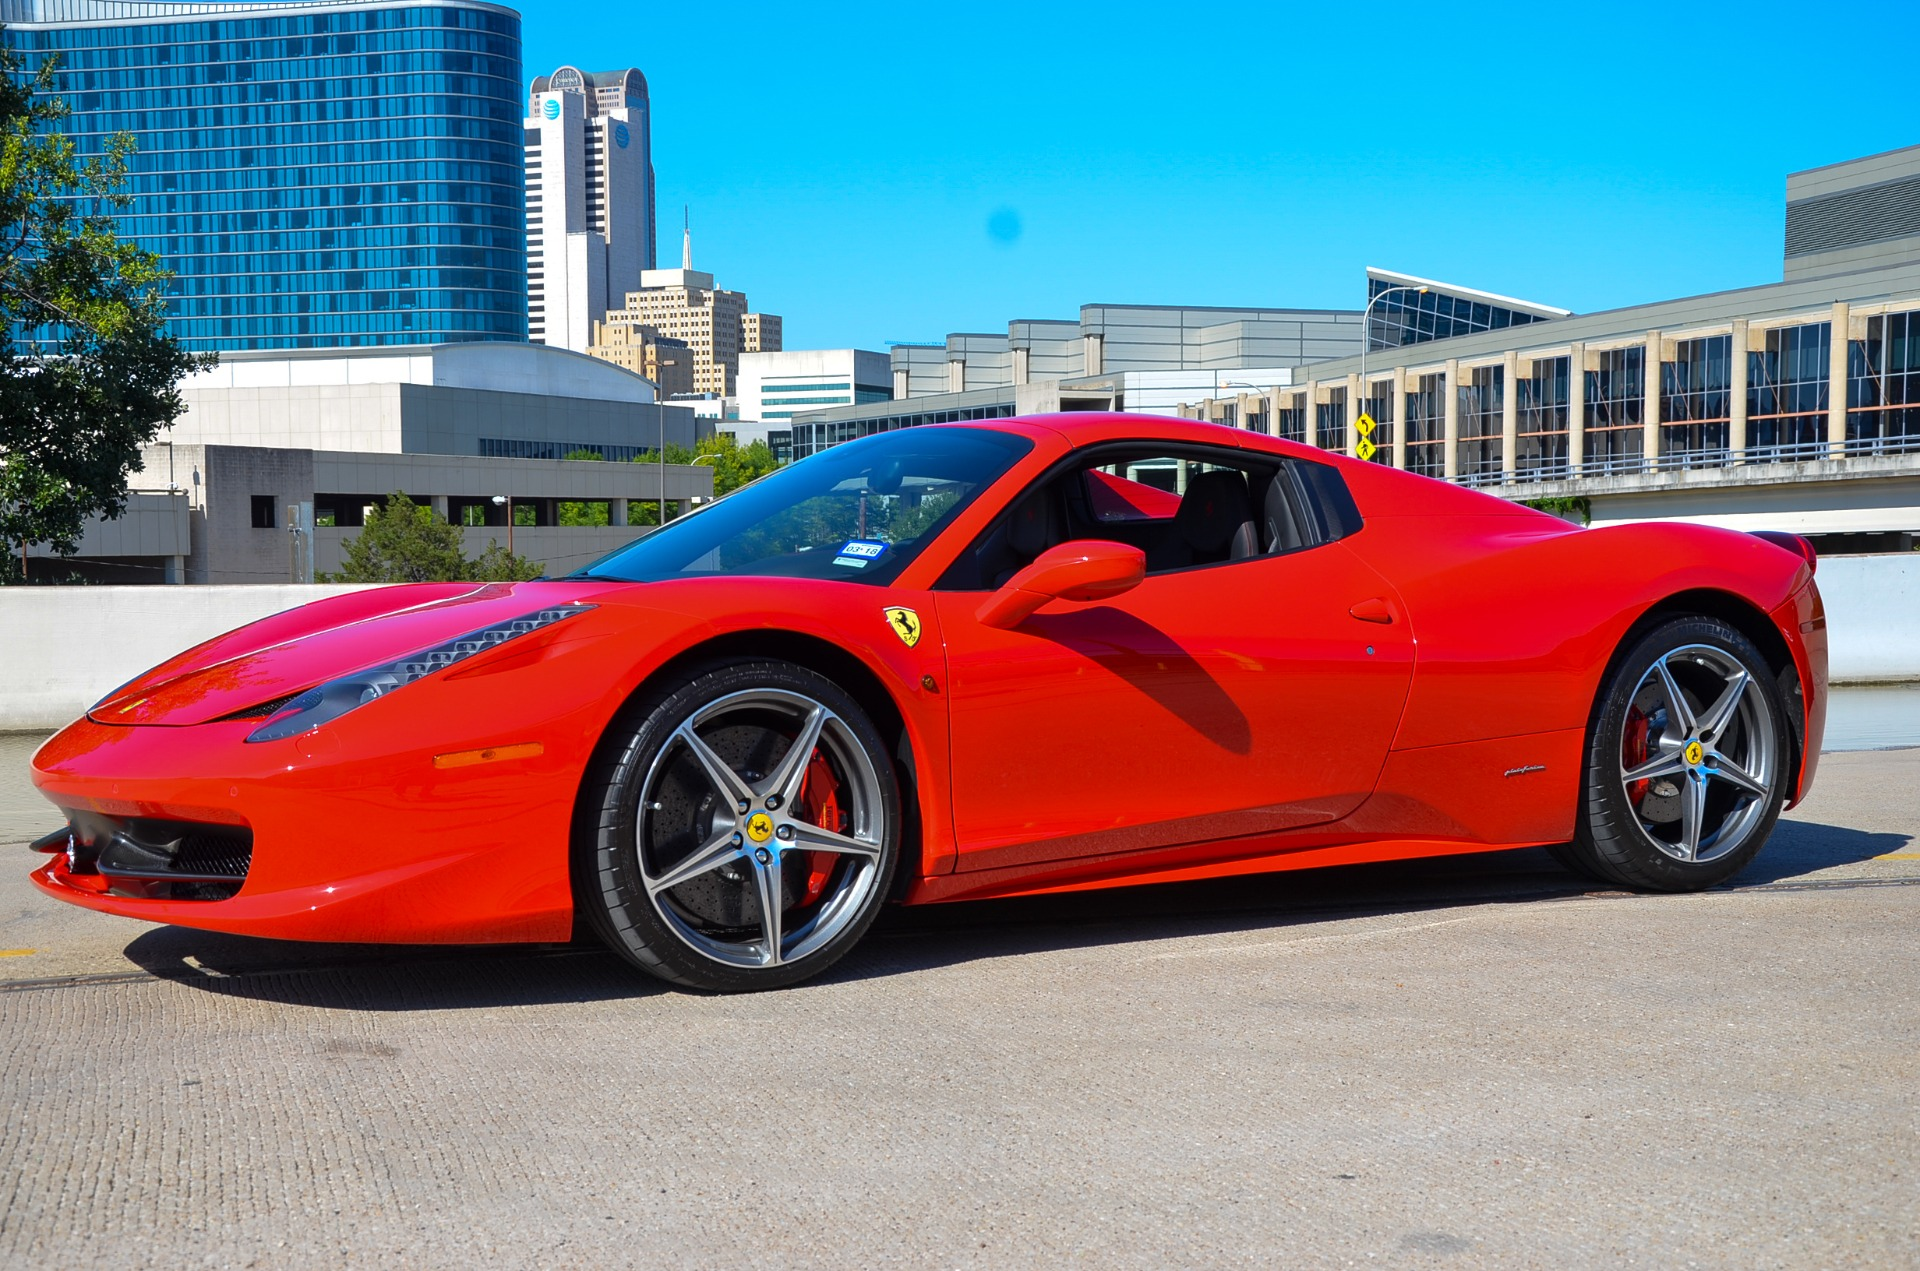 Used 2014 Ferrari 458 Spider for sale Sold at Platinum Motorcars in Dallas TX 75247 1